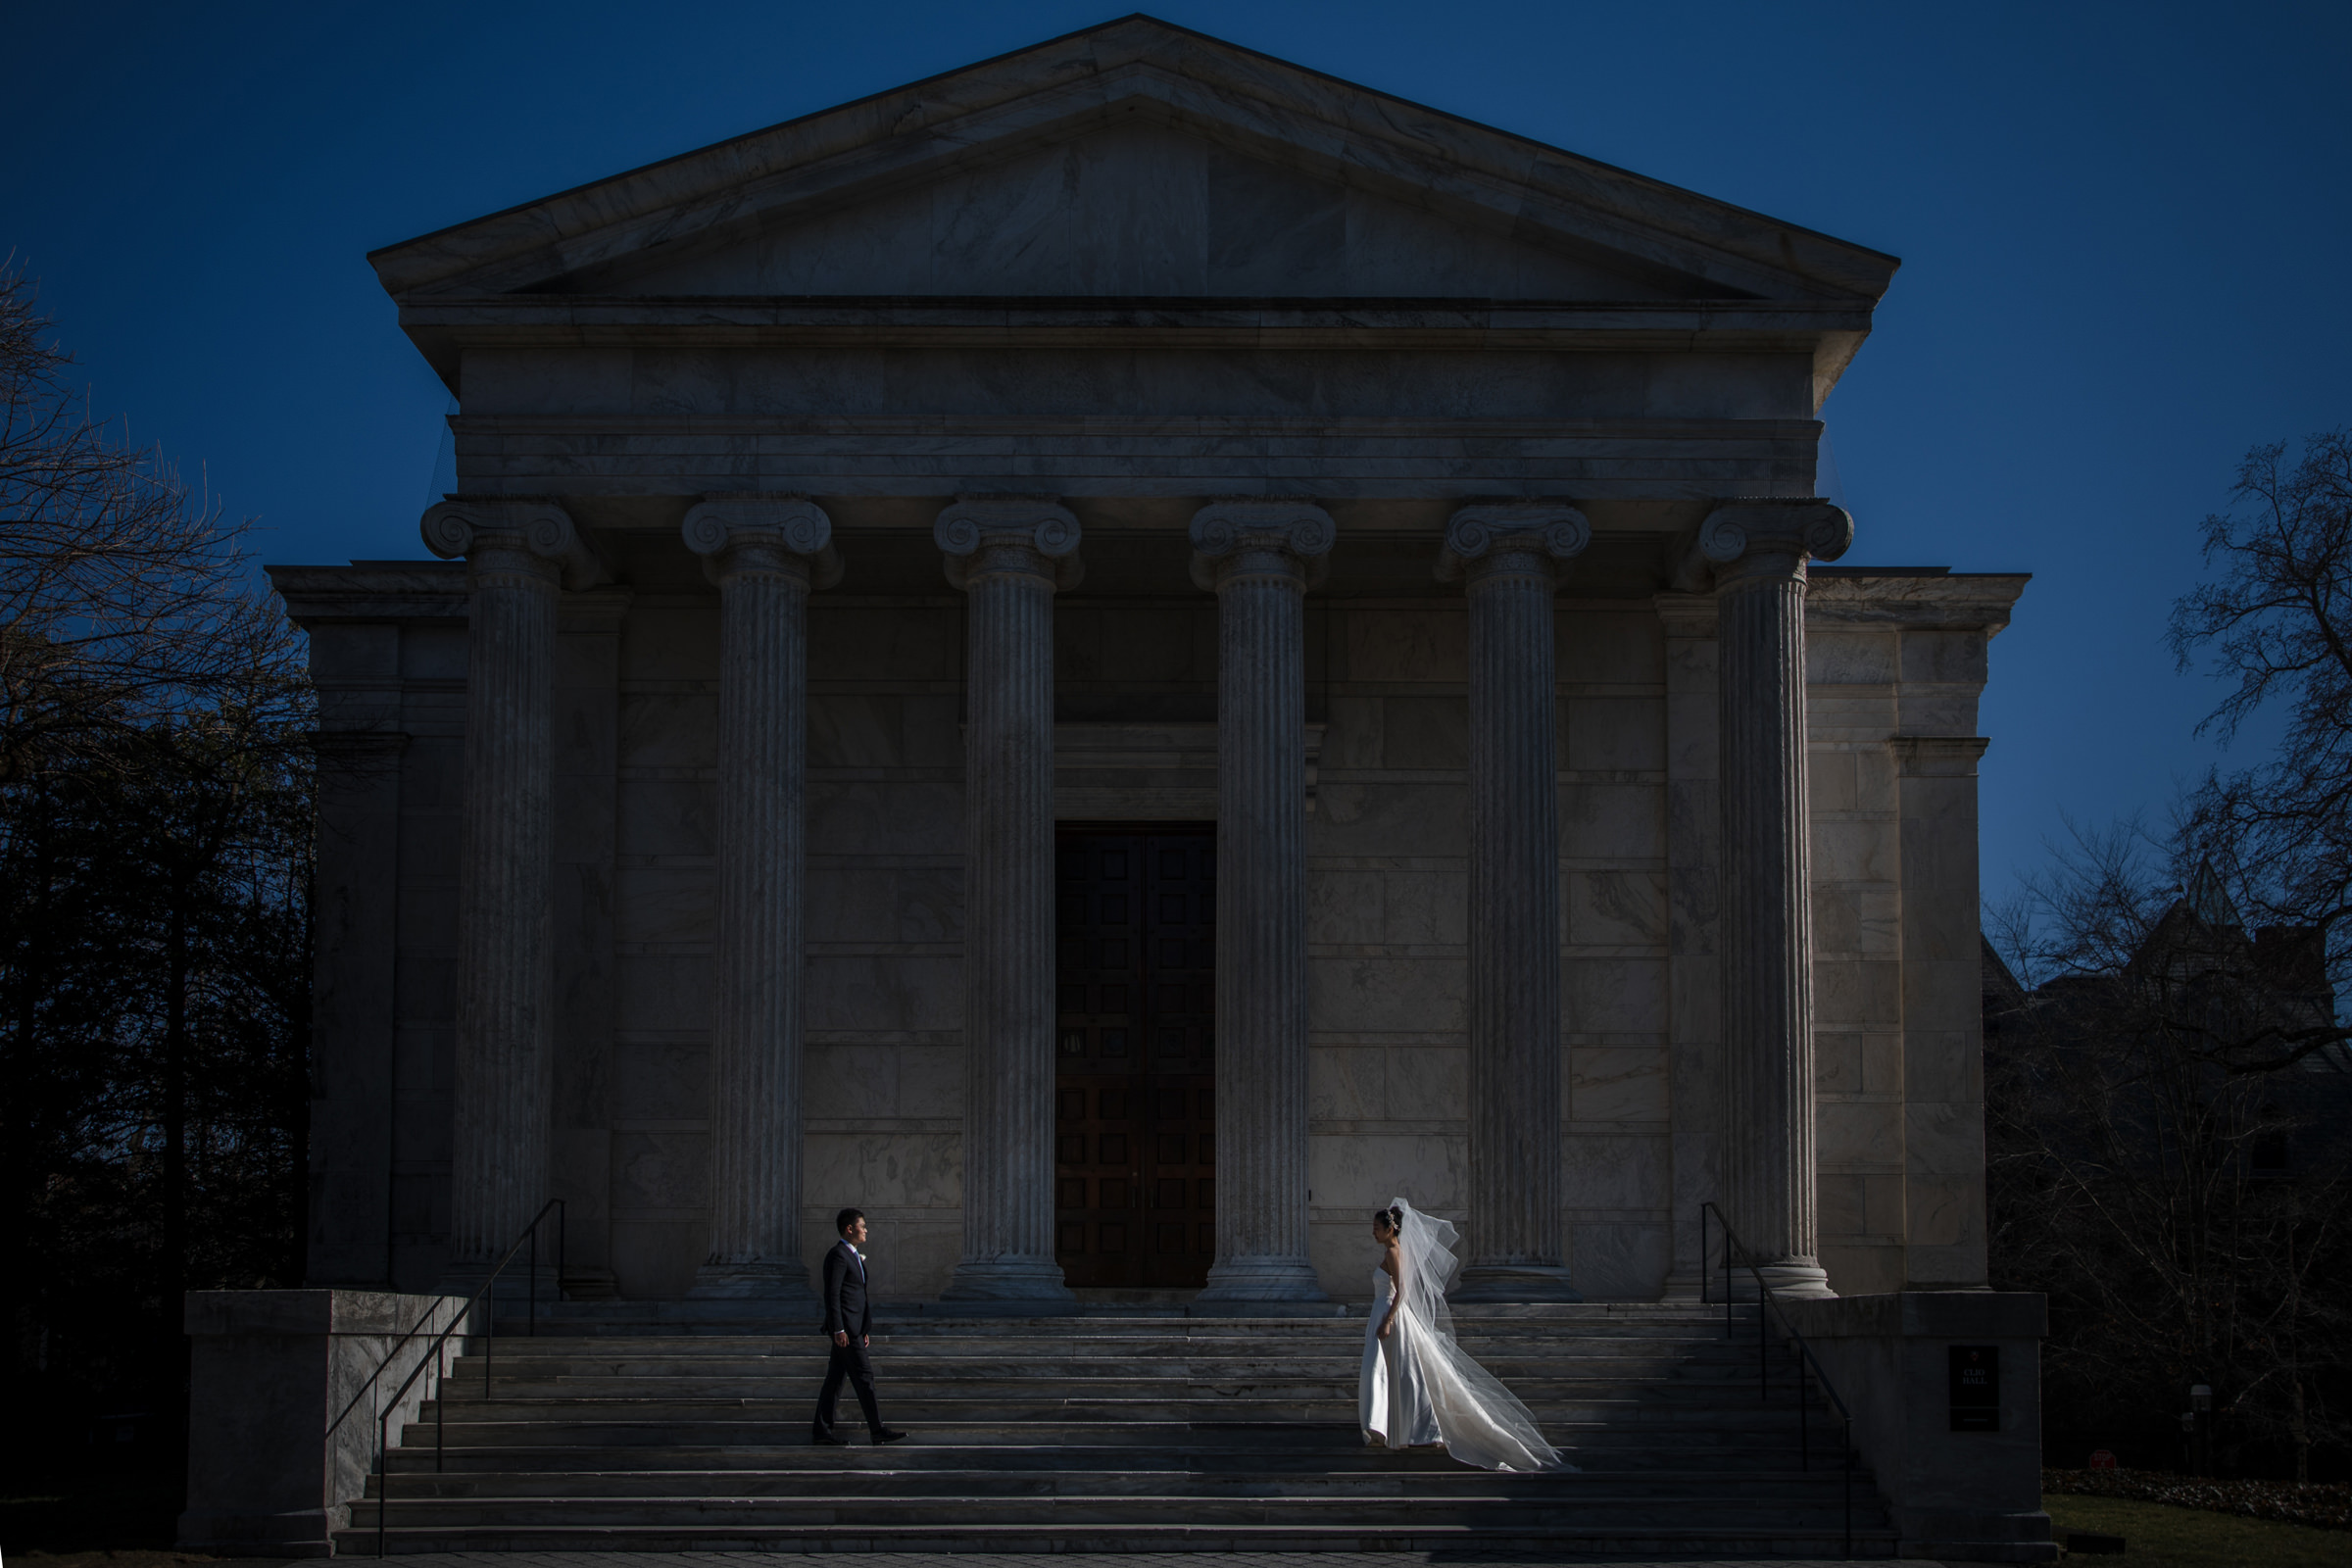 Bride and groom against classic architecture - Photo by Susan Stripling Photography